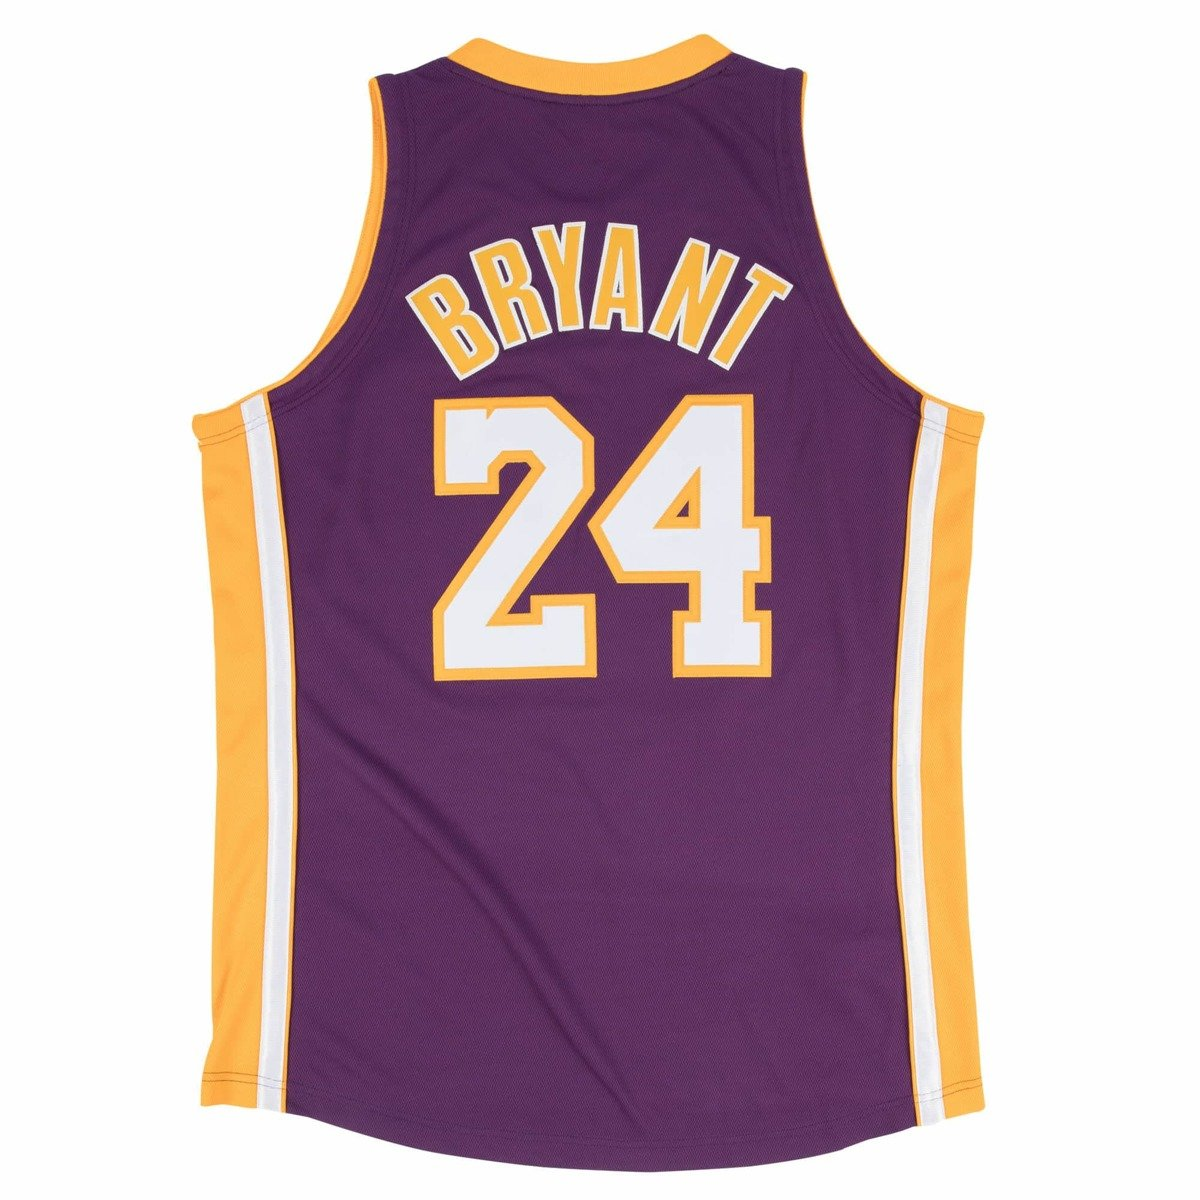 new product abf54 87cc6 Mitchell & Ness NBA Kobe Bryant 2008-09 Los Angeles Lakers Authentic Jersey